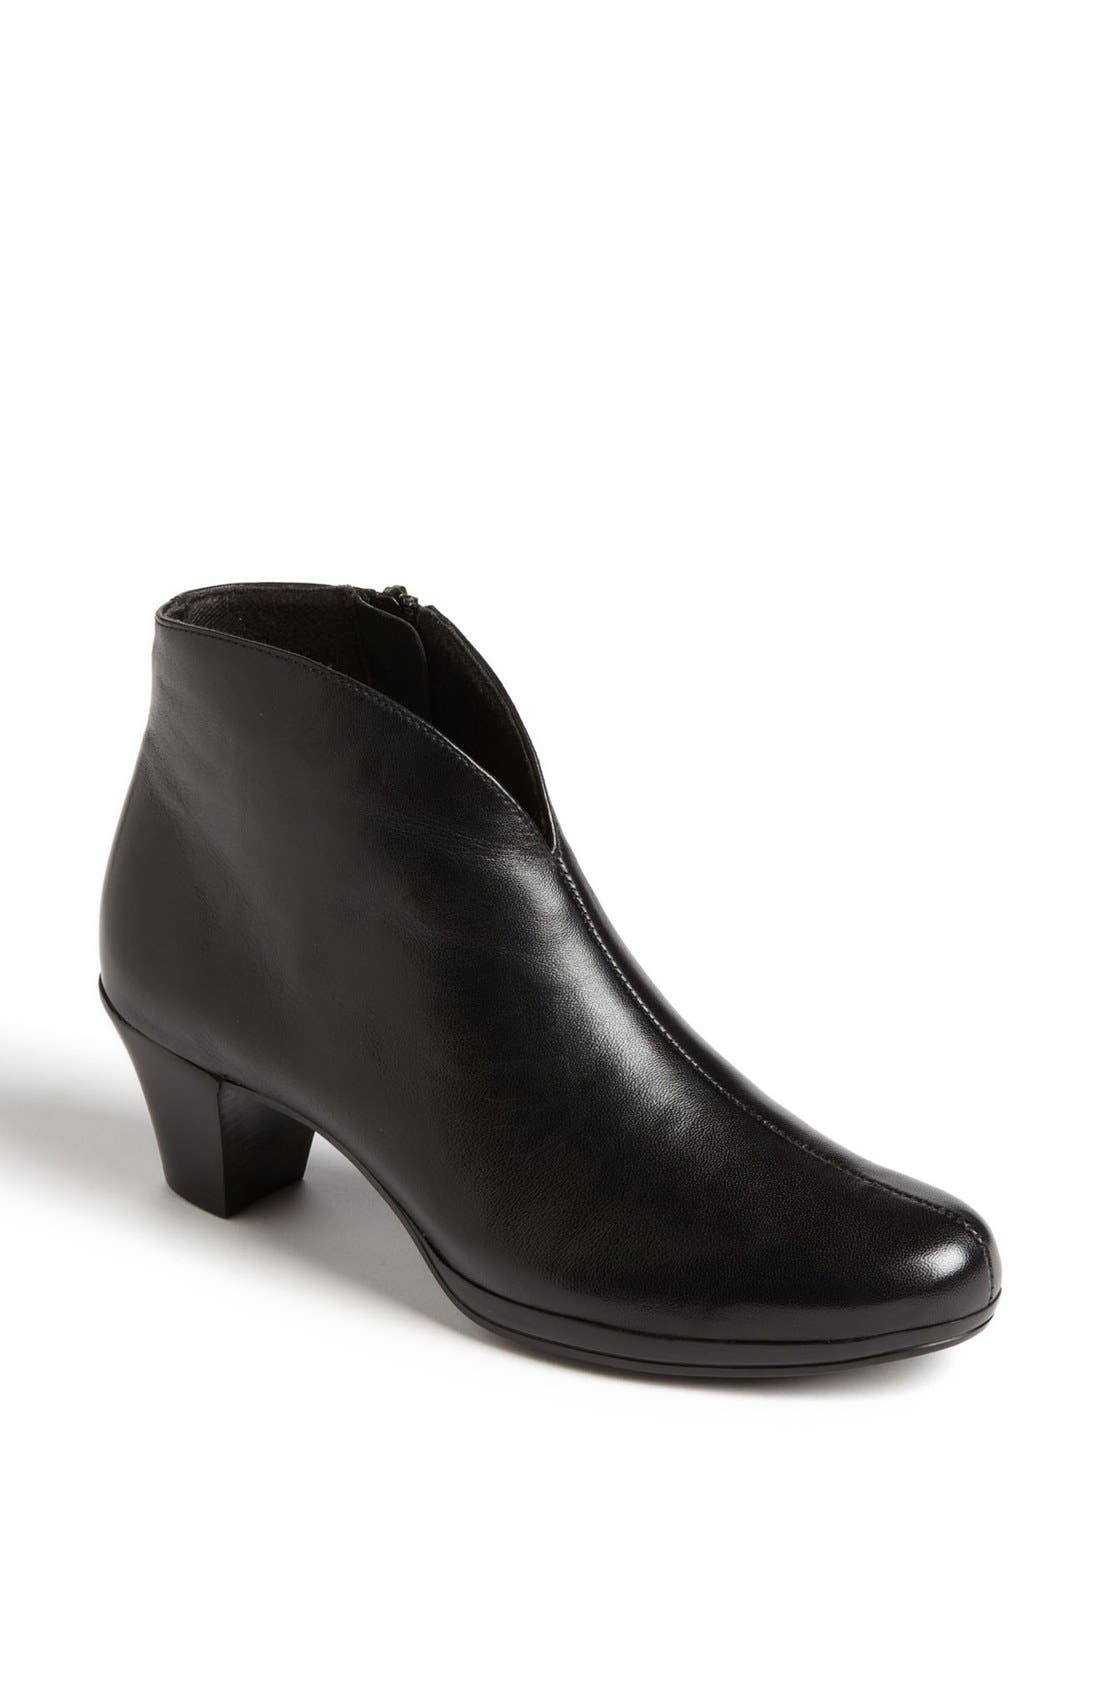 Alternate Image 1 Selected - Munro 'Robyn' Boot (Women) (Online Only)